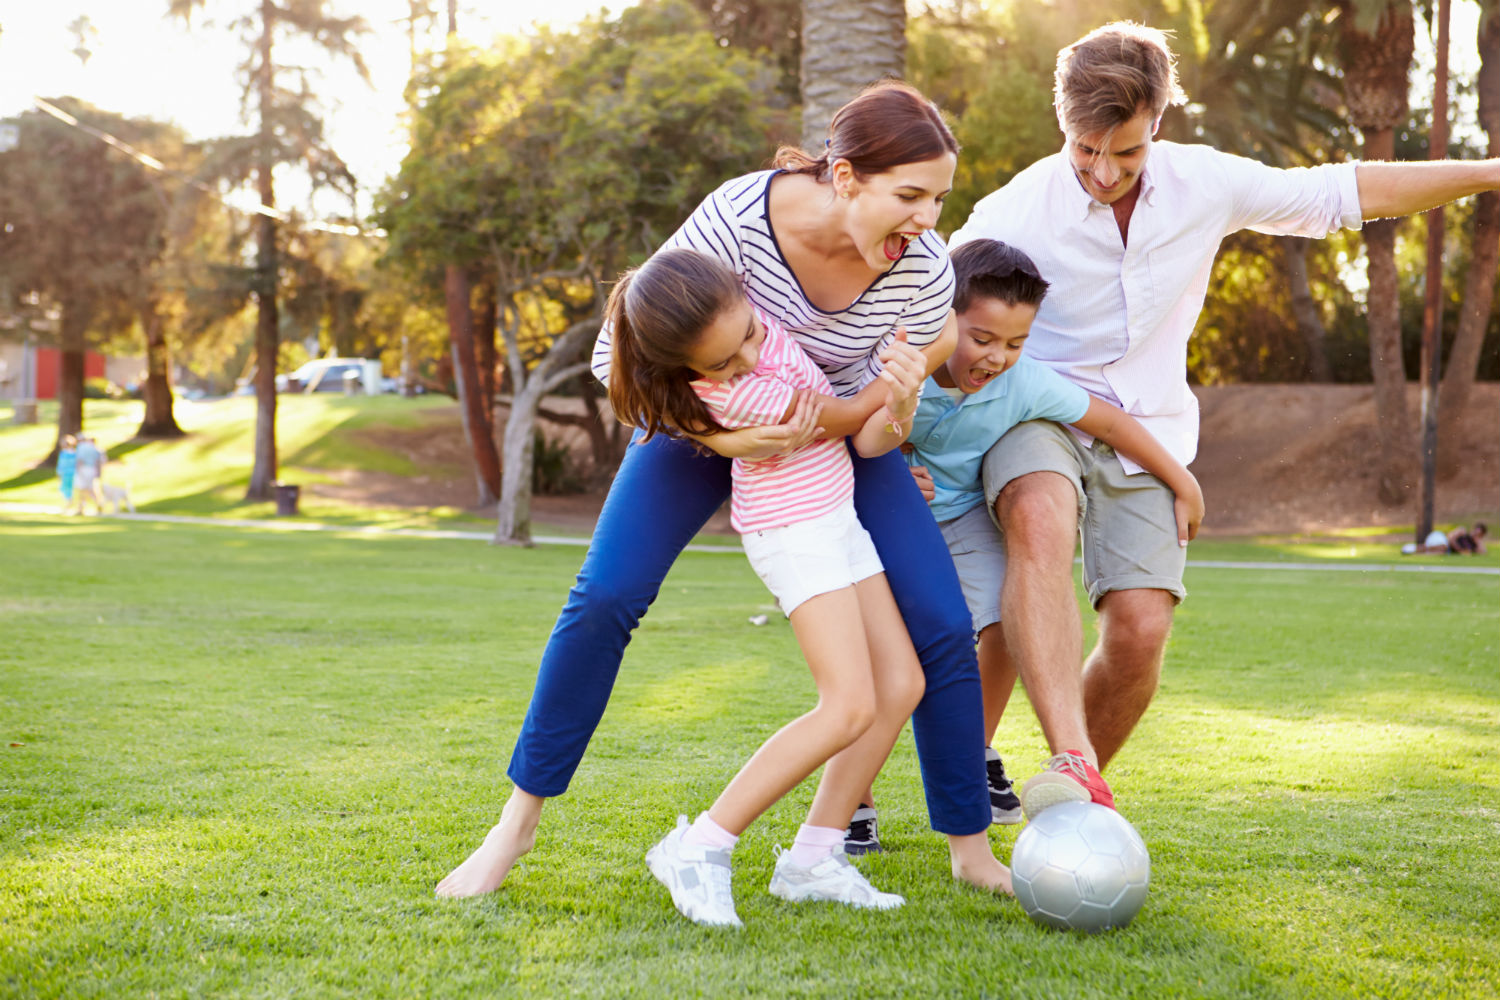 Outdoor Activities to Get The Whole Family Moving